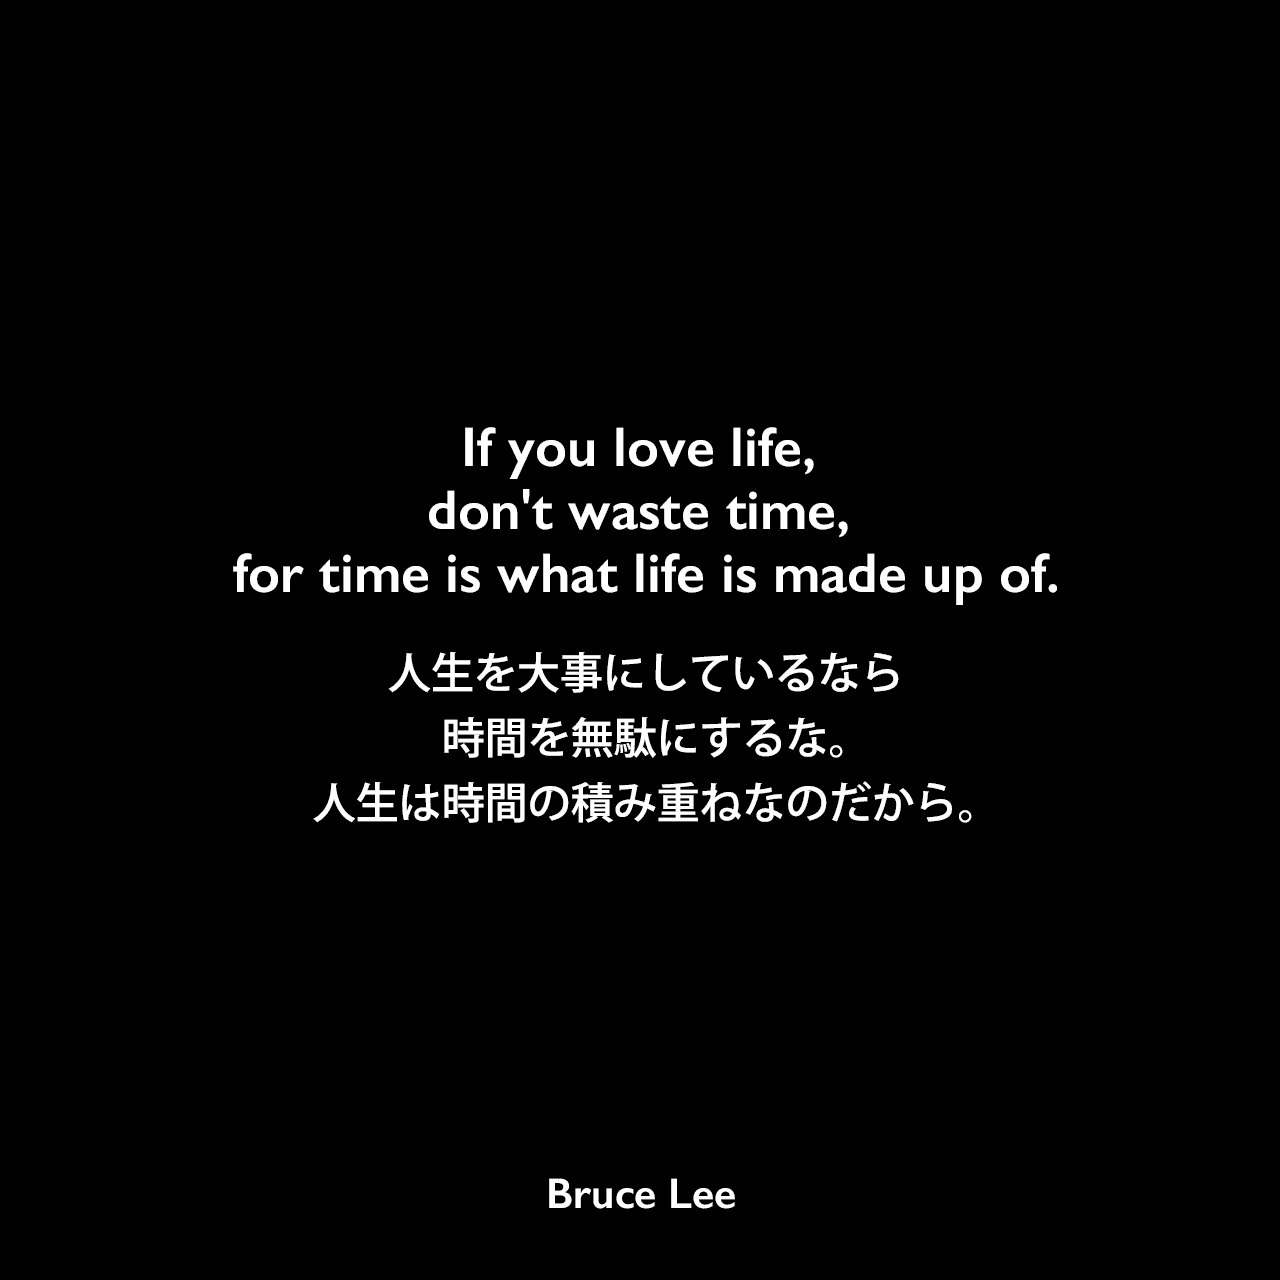 If you love life, don't waste time, for time is what life is made up of.人生を大事にしているなら、時間を無駄にするな。人生は時間の積み重ねなのだから。- ブルース・リーの本「ブルース・リーが語るストライキング・ソーツ」より